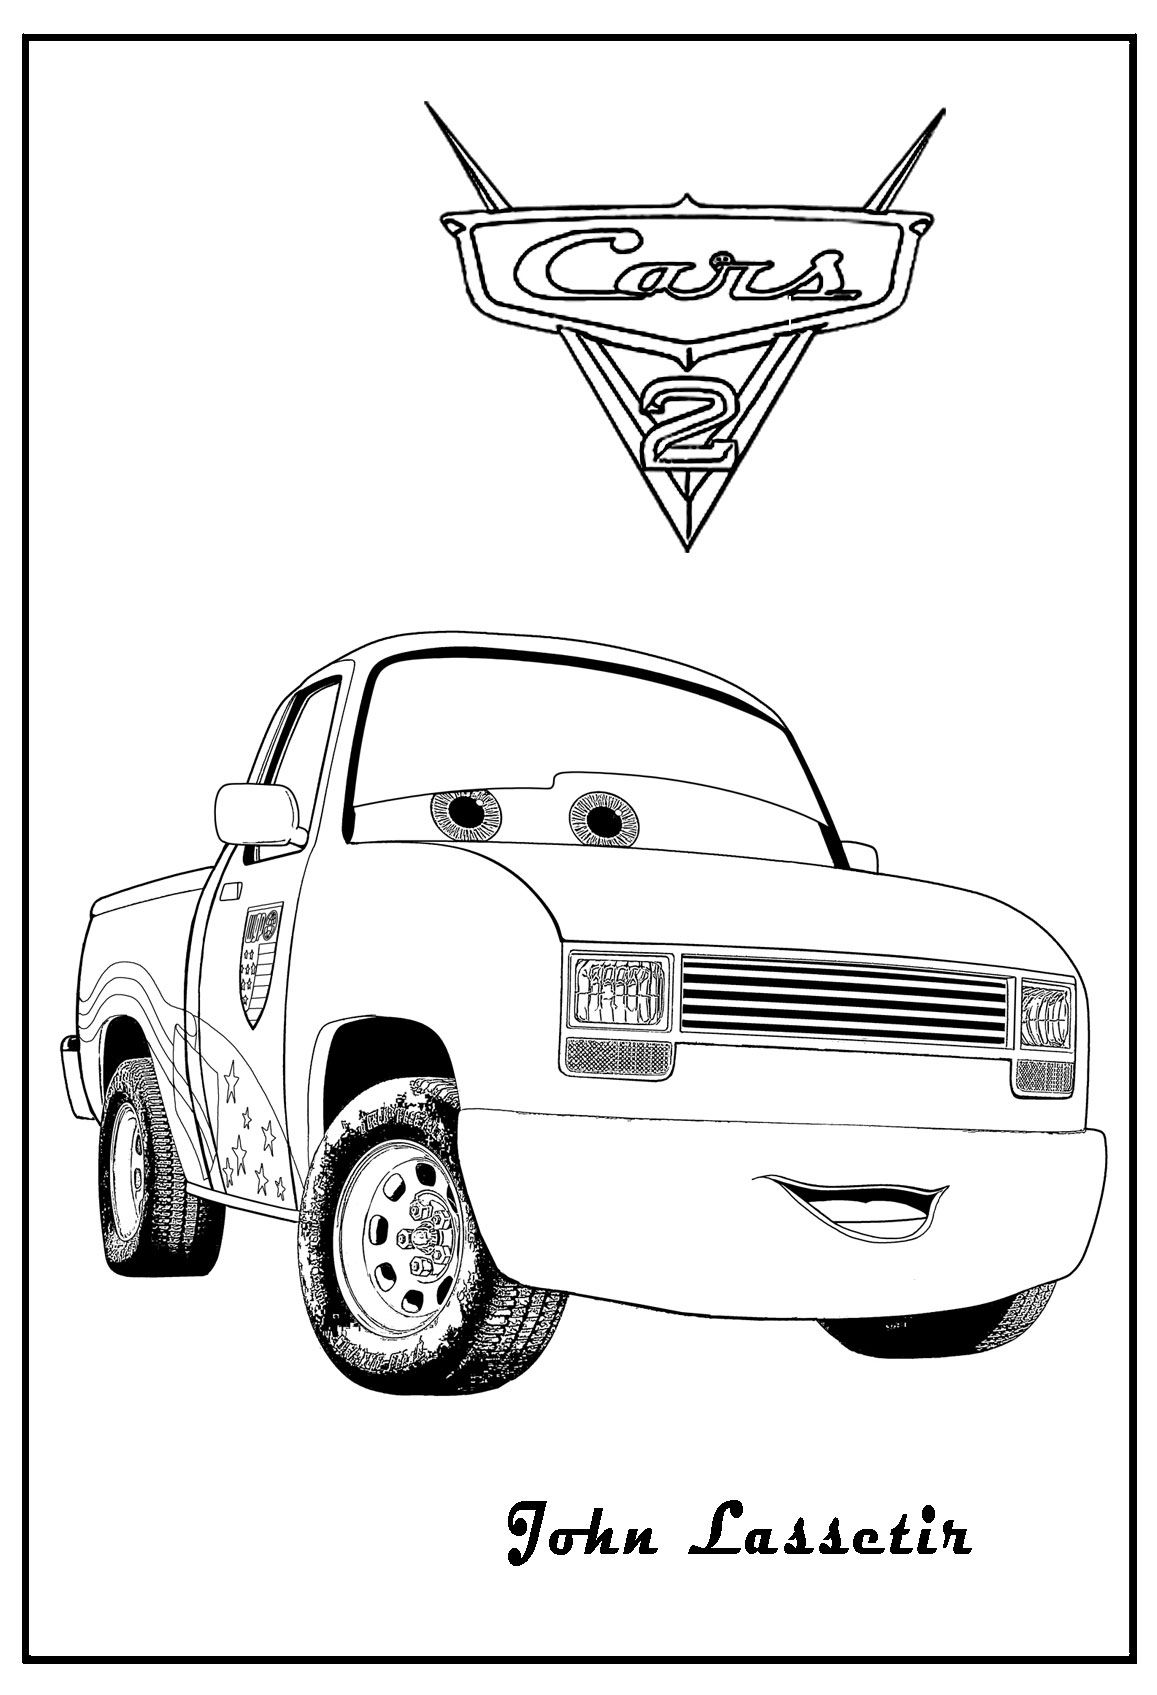 cars 2 printable coloring pages cars coloring john lassetire cars coloring lizzie cars coloring the - Cars 2 Coloring Pages To Print